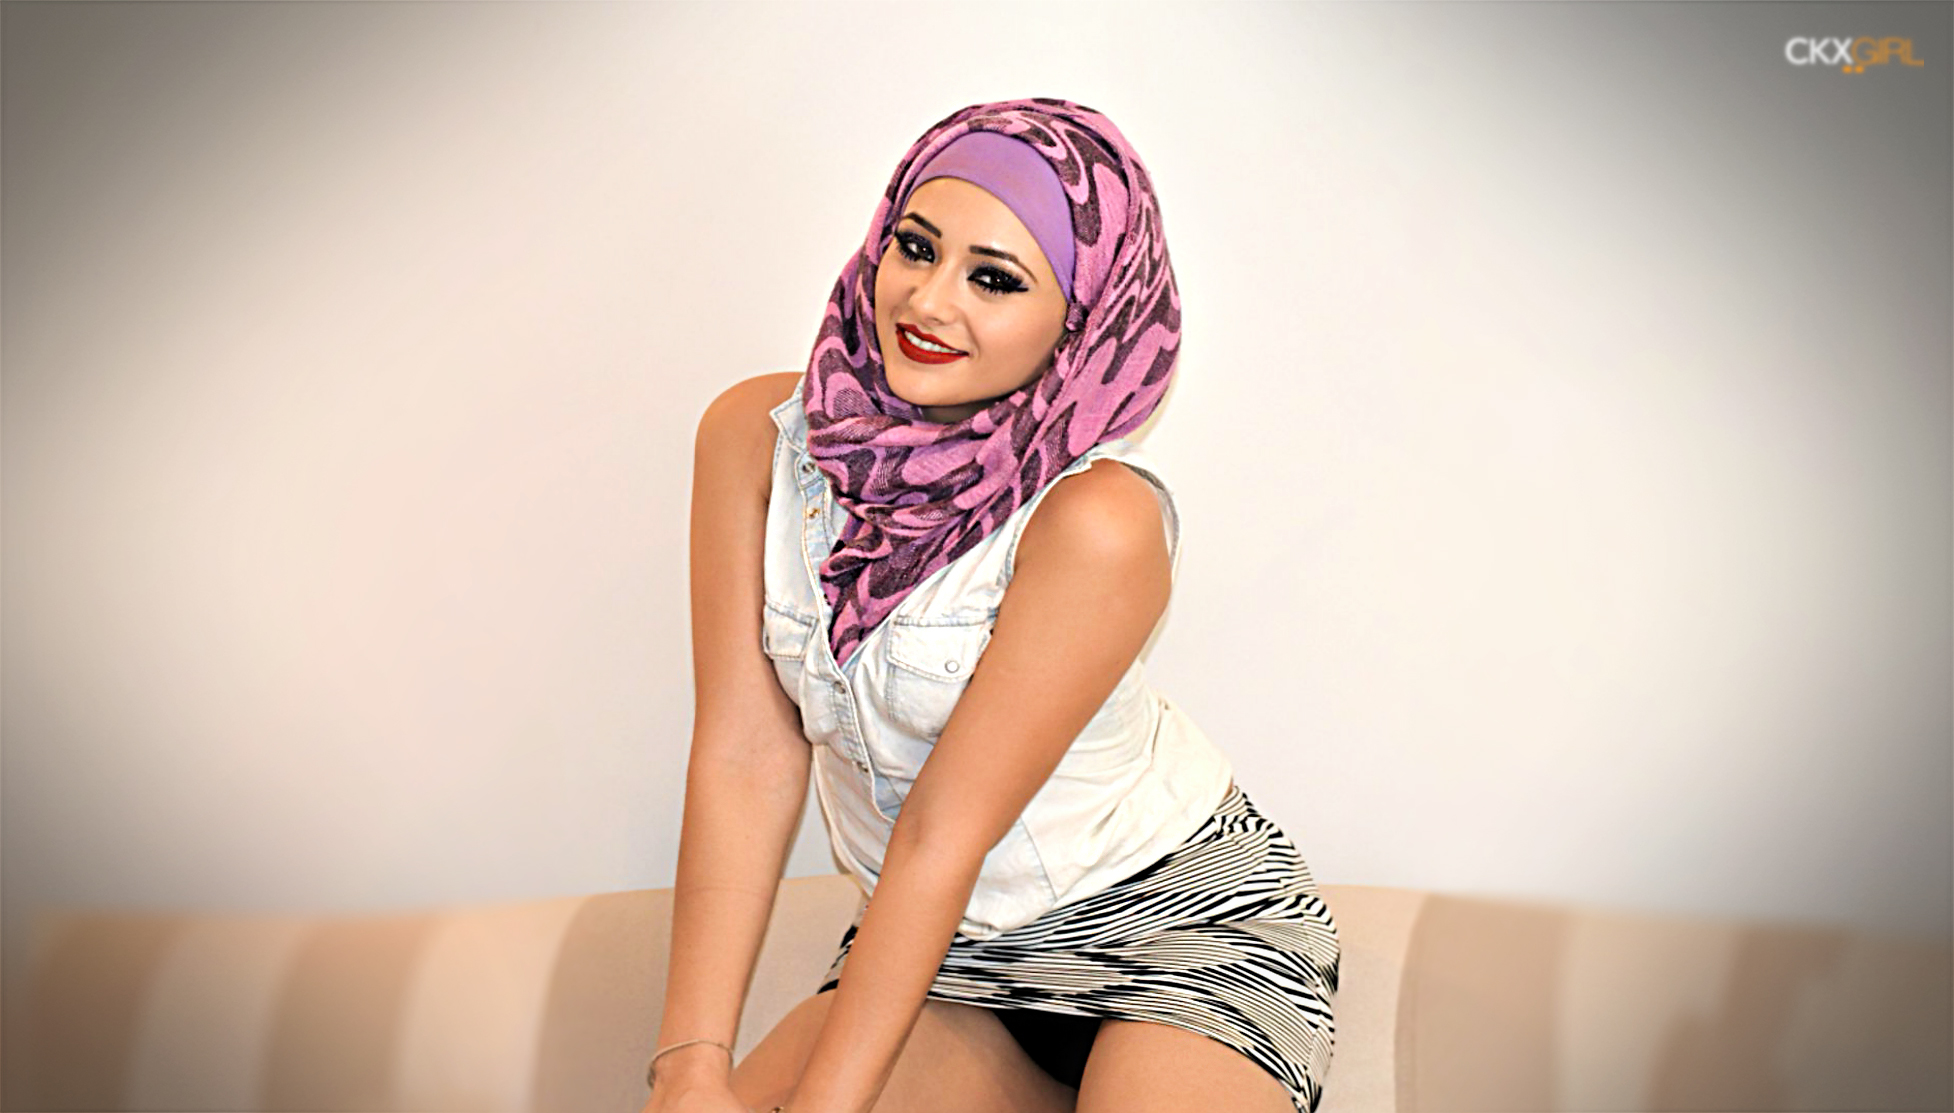 coles point muslim girl personals Local horny sexy girls looking for nice guys chat with singles and find your match after browsing member pictures from all over the world our site is the worlds free online personals and dating service.